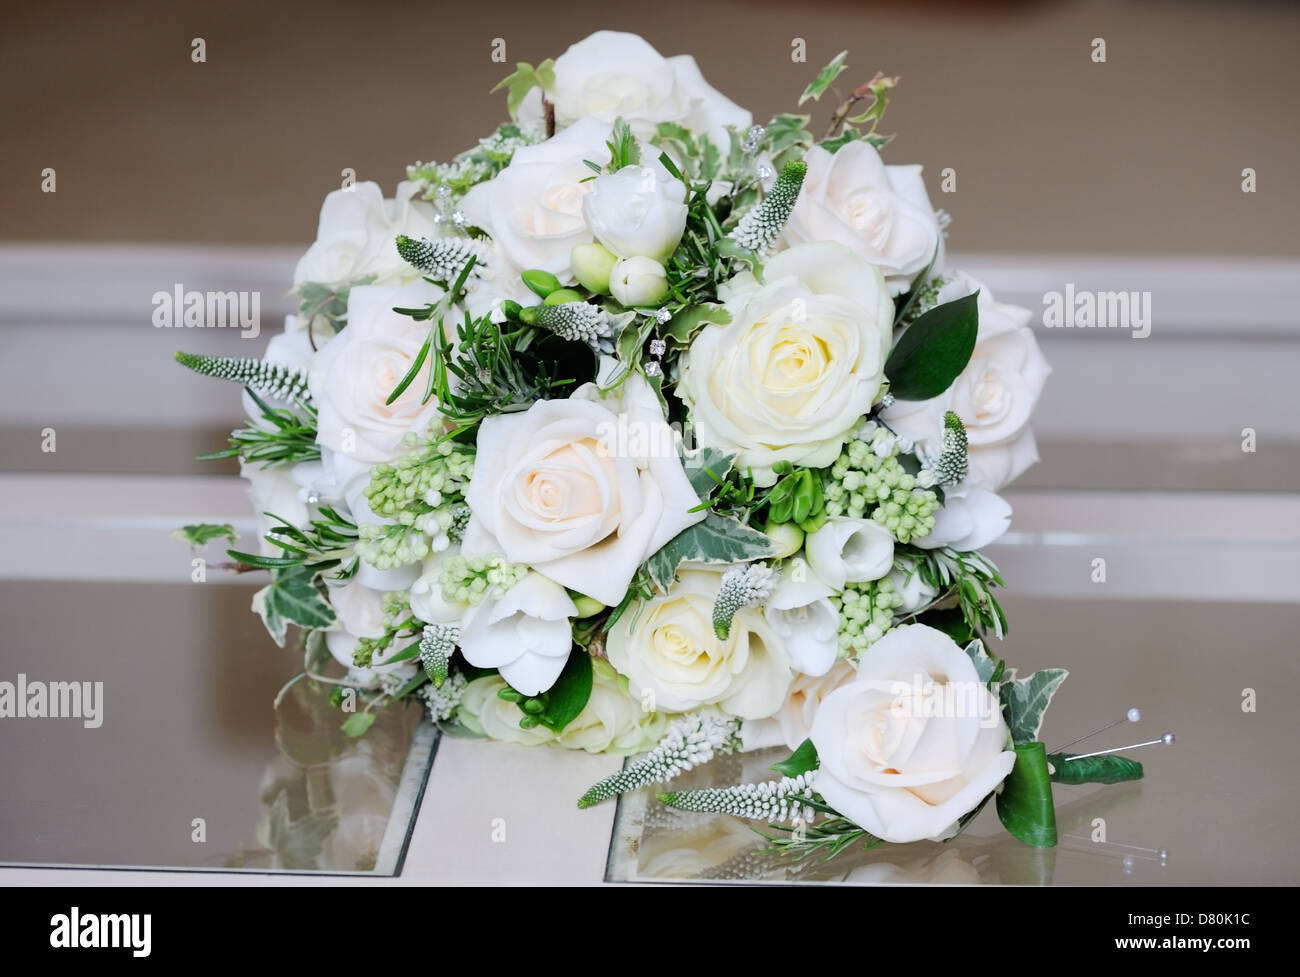 Close up of brides flowers and grooms single rose on wedding day close up of brides flowers and grooms single rose on wedding day izmirmasajfo